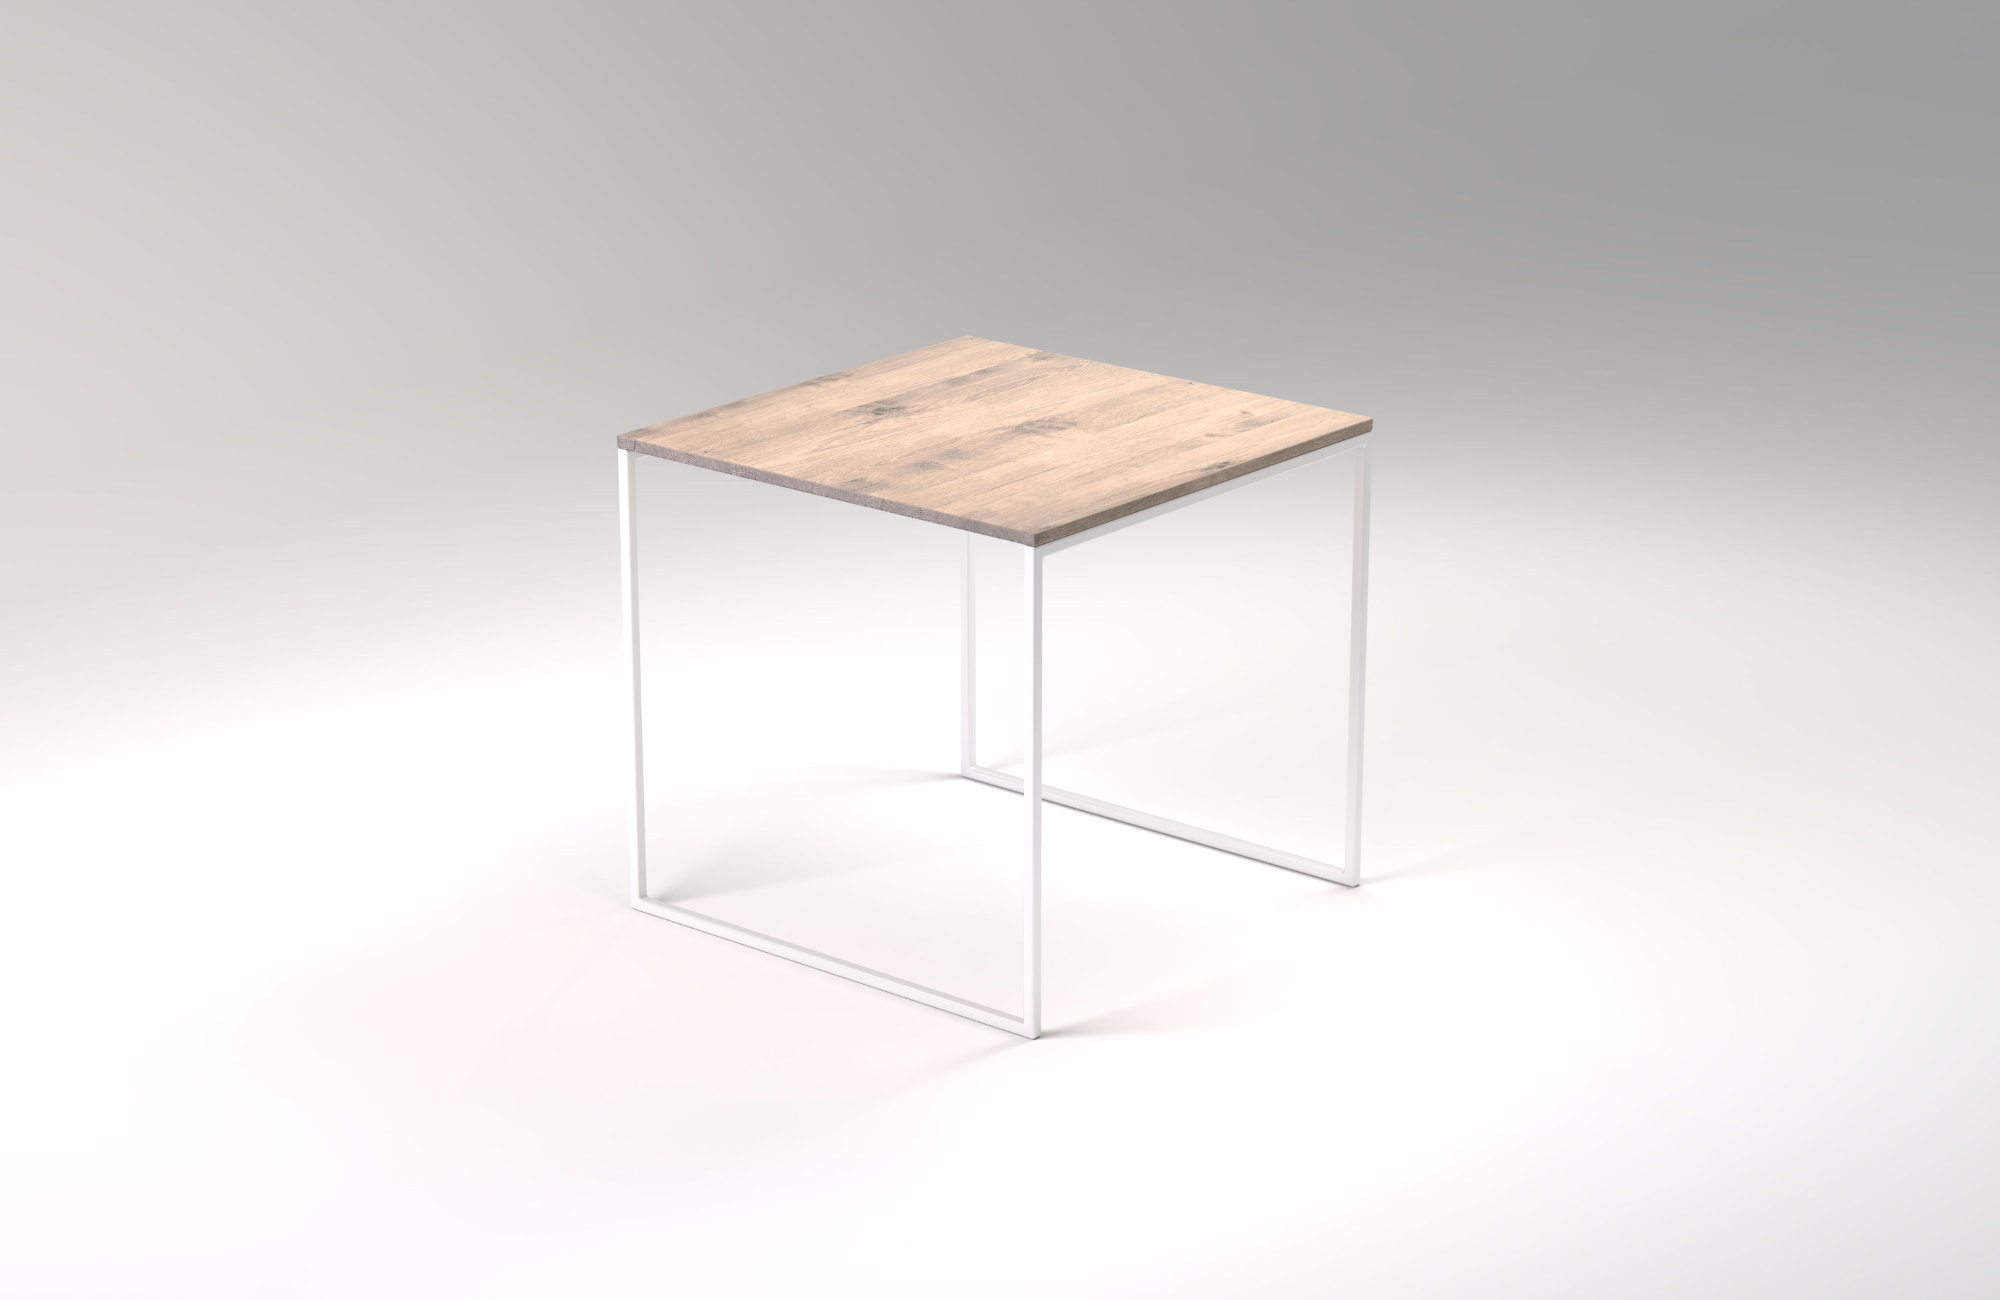 square-kitchen-table-kvadrat-white